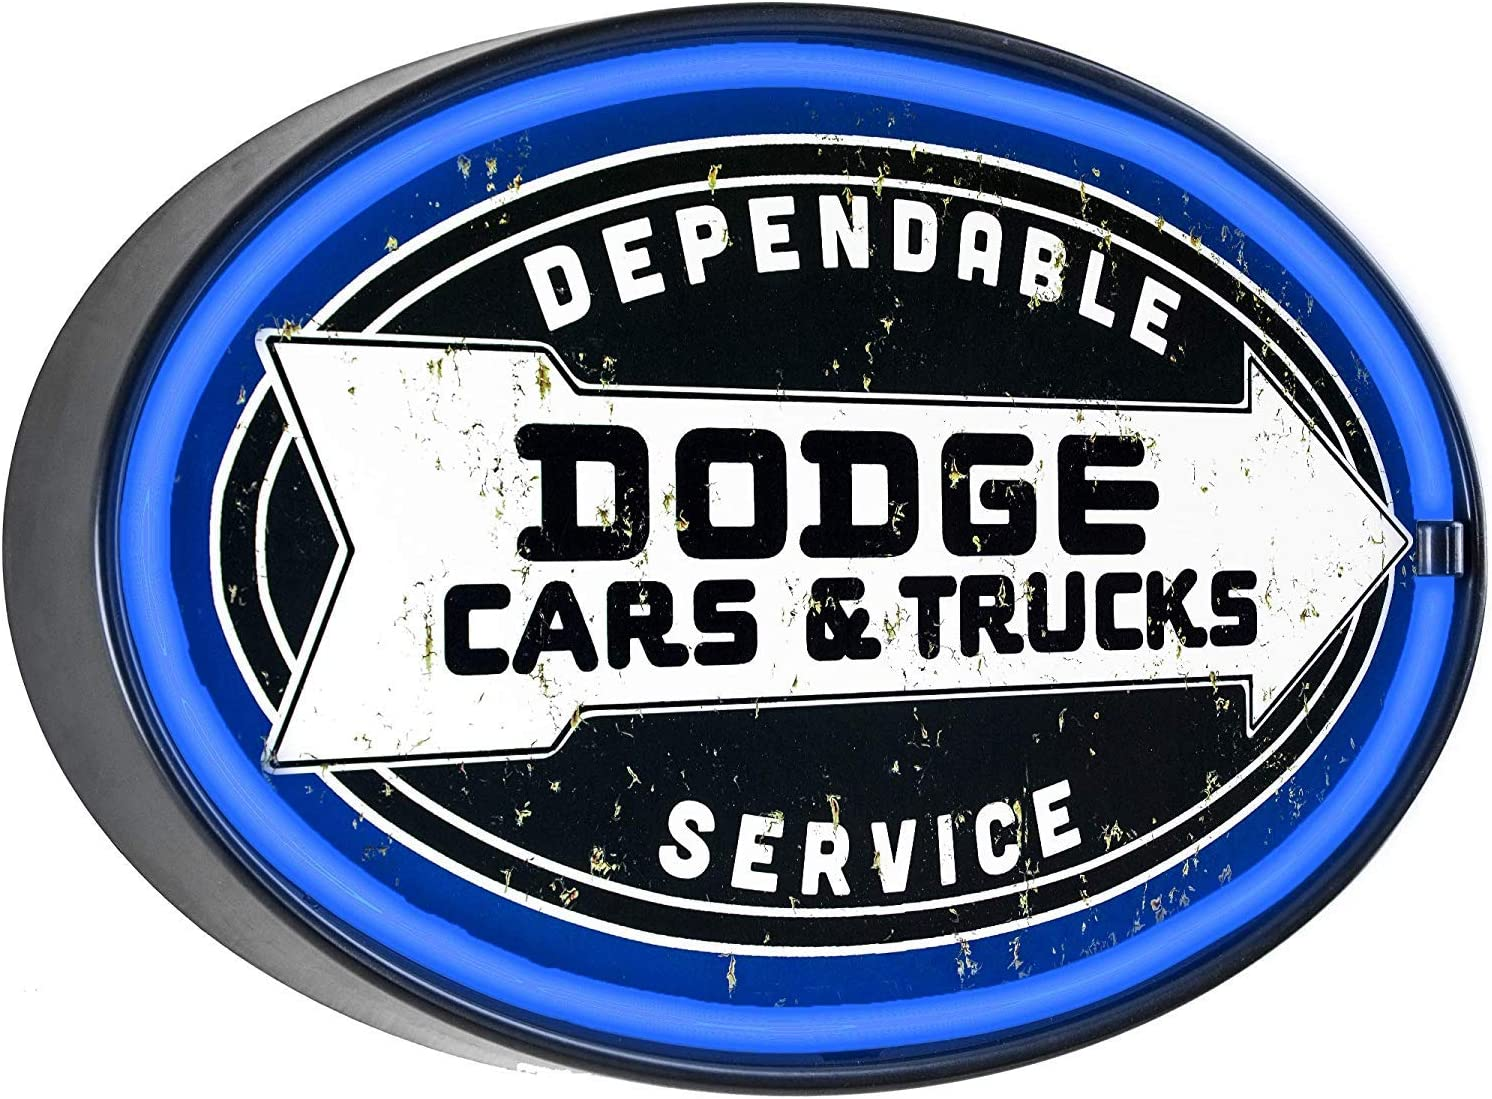 Dodge Cars & Trucks Dependable Service - Reproduction Vintage Advertising Oval Sign - Battery Powered LED Neon Style Light - Wall Decor for Home, Garage, Game Room, Or Man Cave - 16 x 11 x 2 Inches